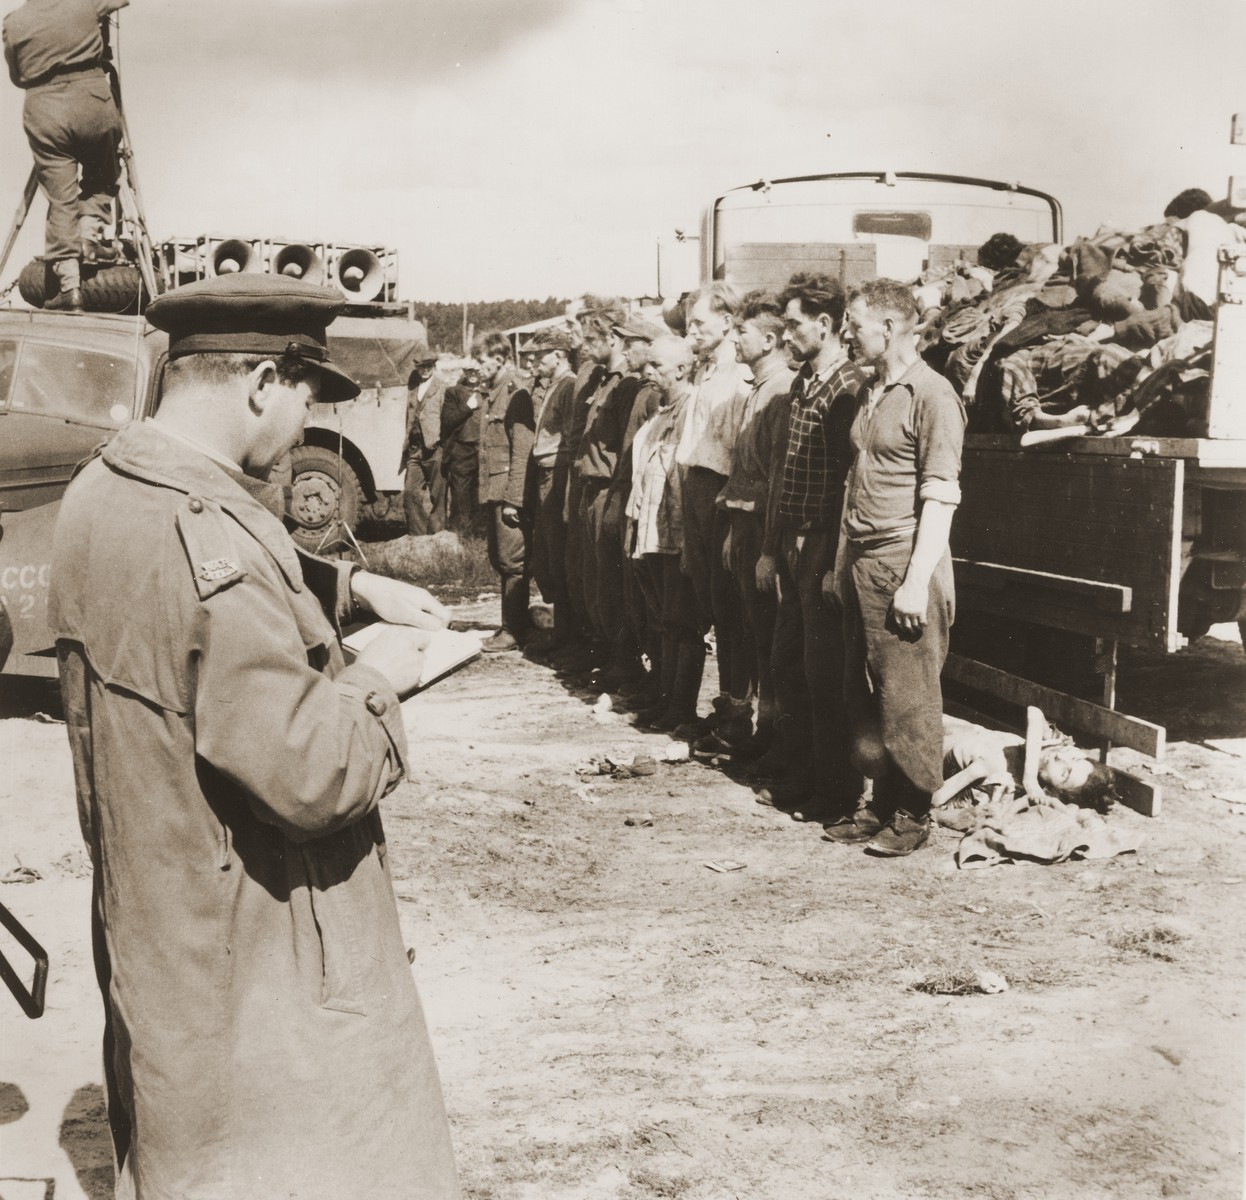 Former camp personnel, including Dr. Fritz Klein, once the camp doctor of Auschwitz and Bergen-Belsen, [third from the right] wait for orders to bury the corpses heaped on the truck behind them.